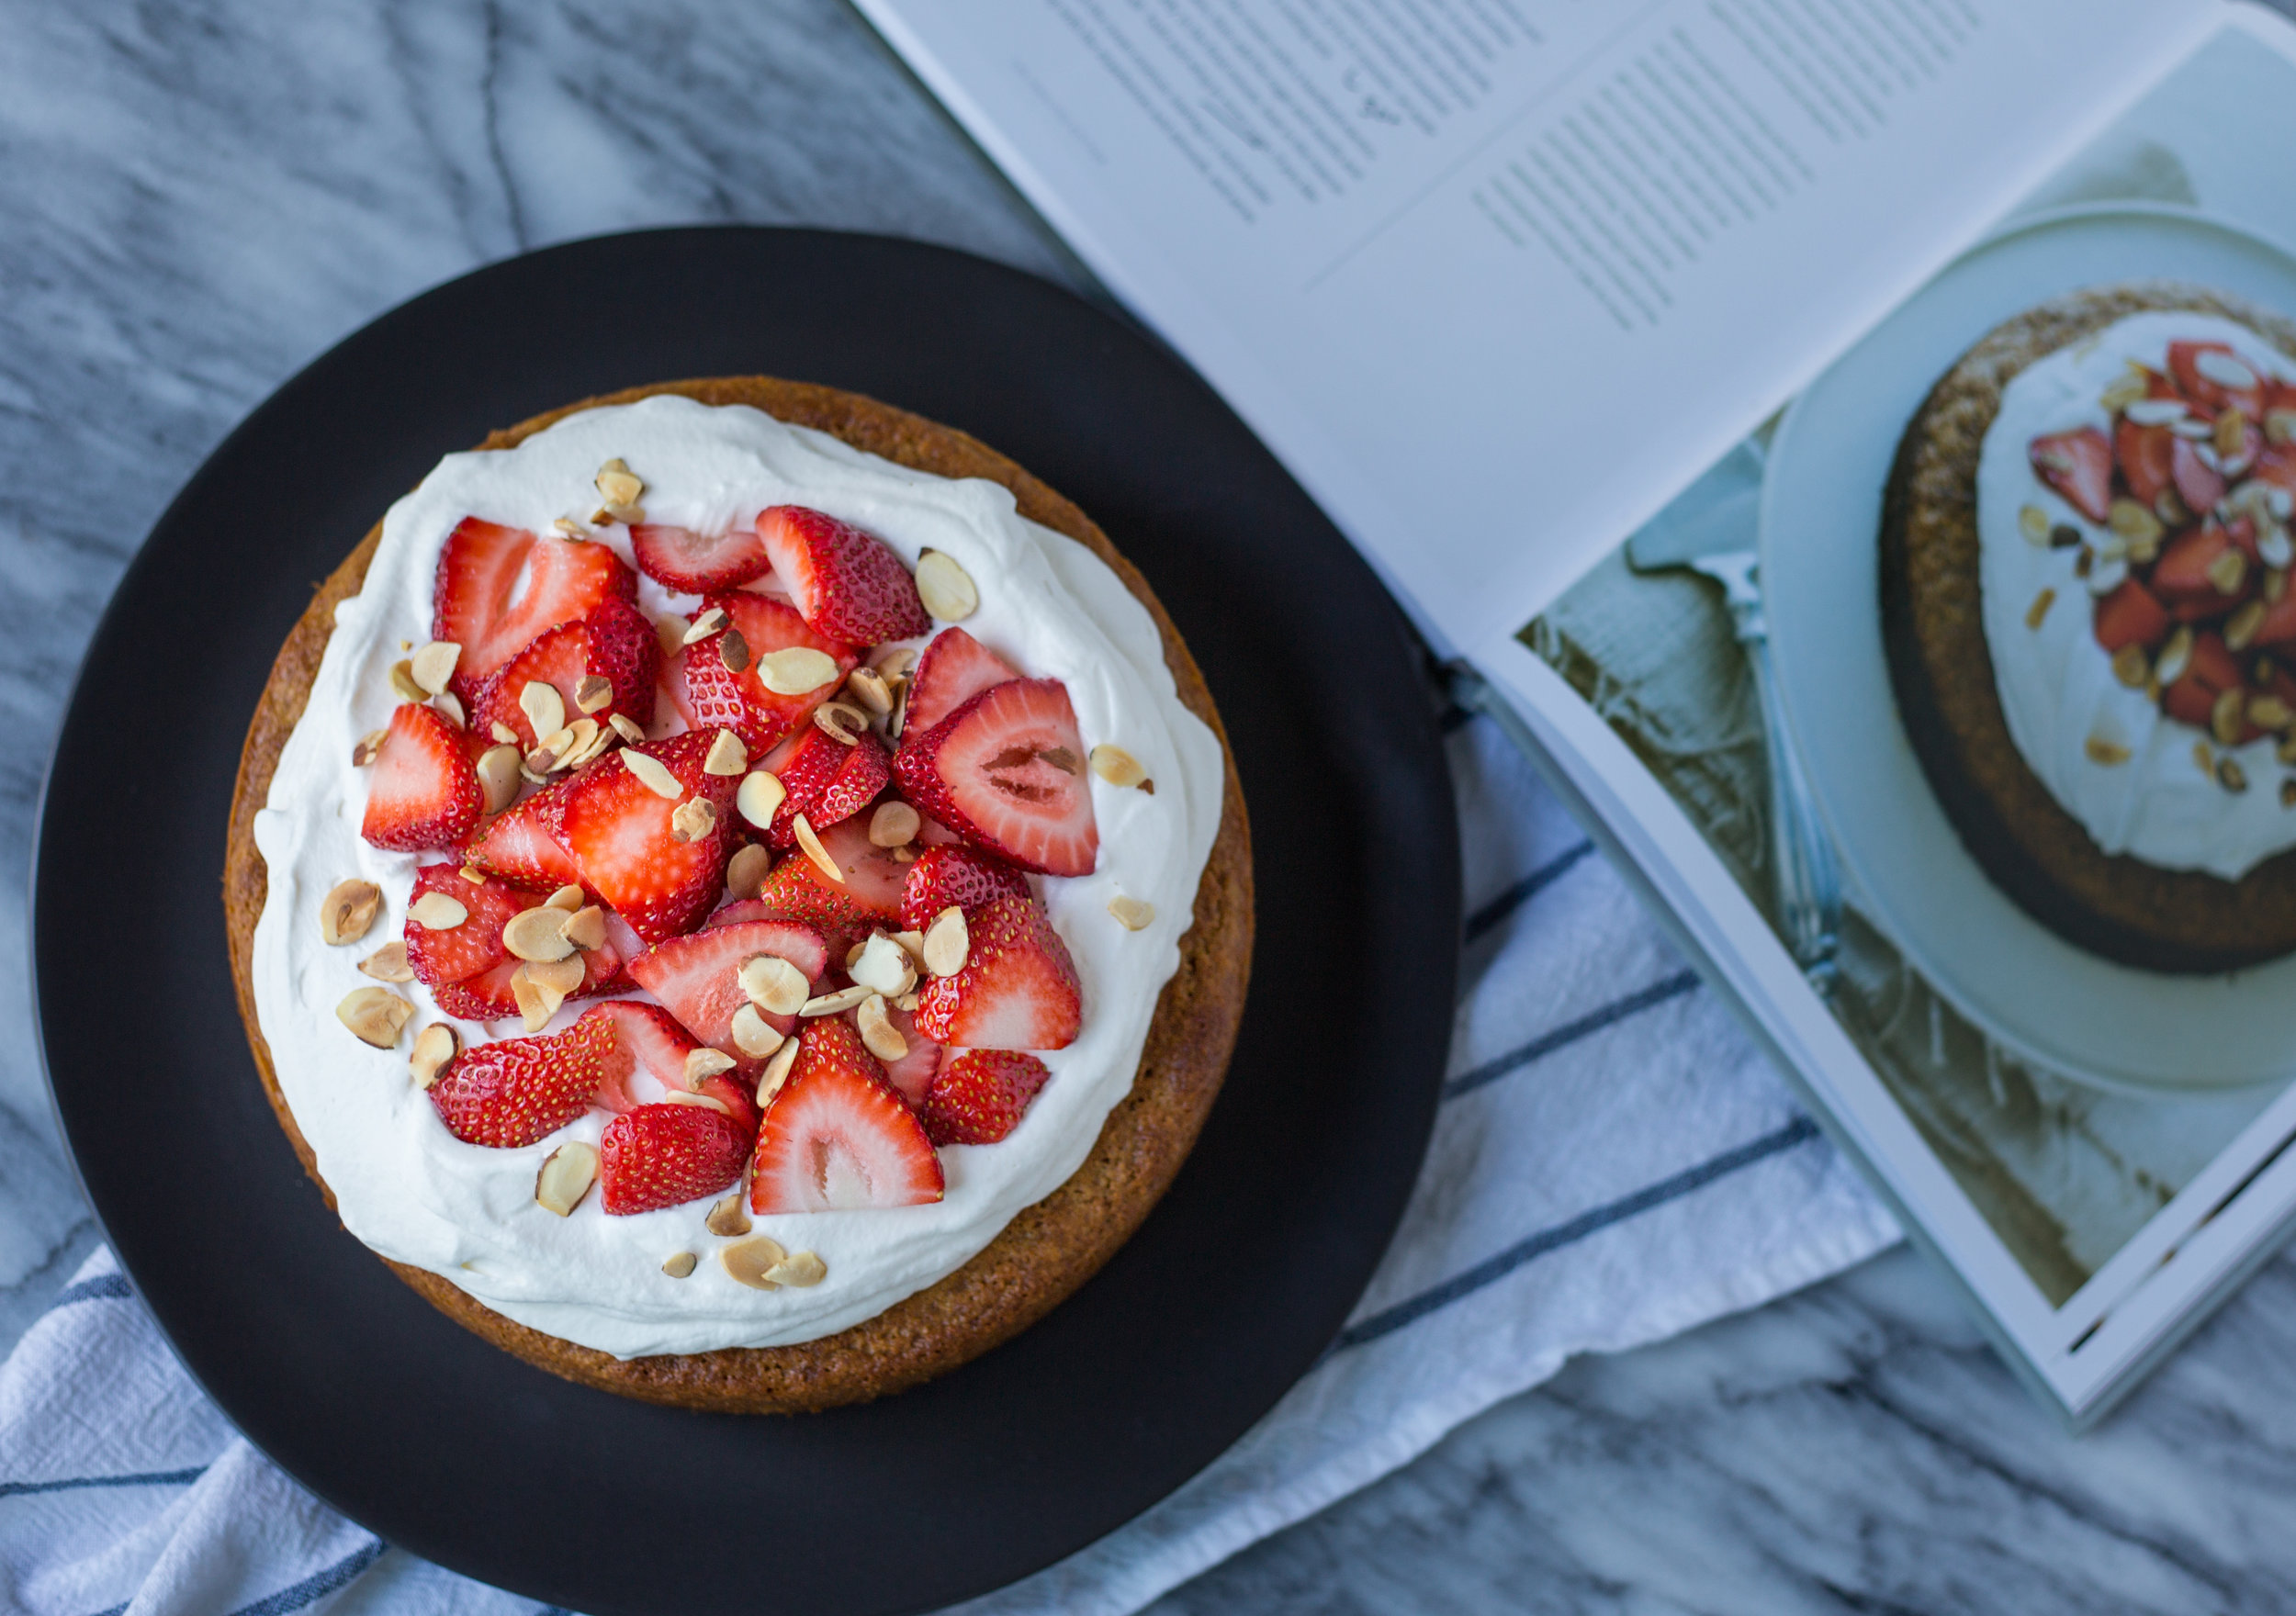 Almond Meal Cake with Strawberries and Mascarpone Whipped Cream